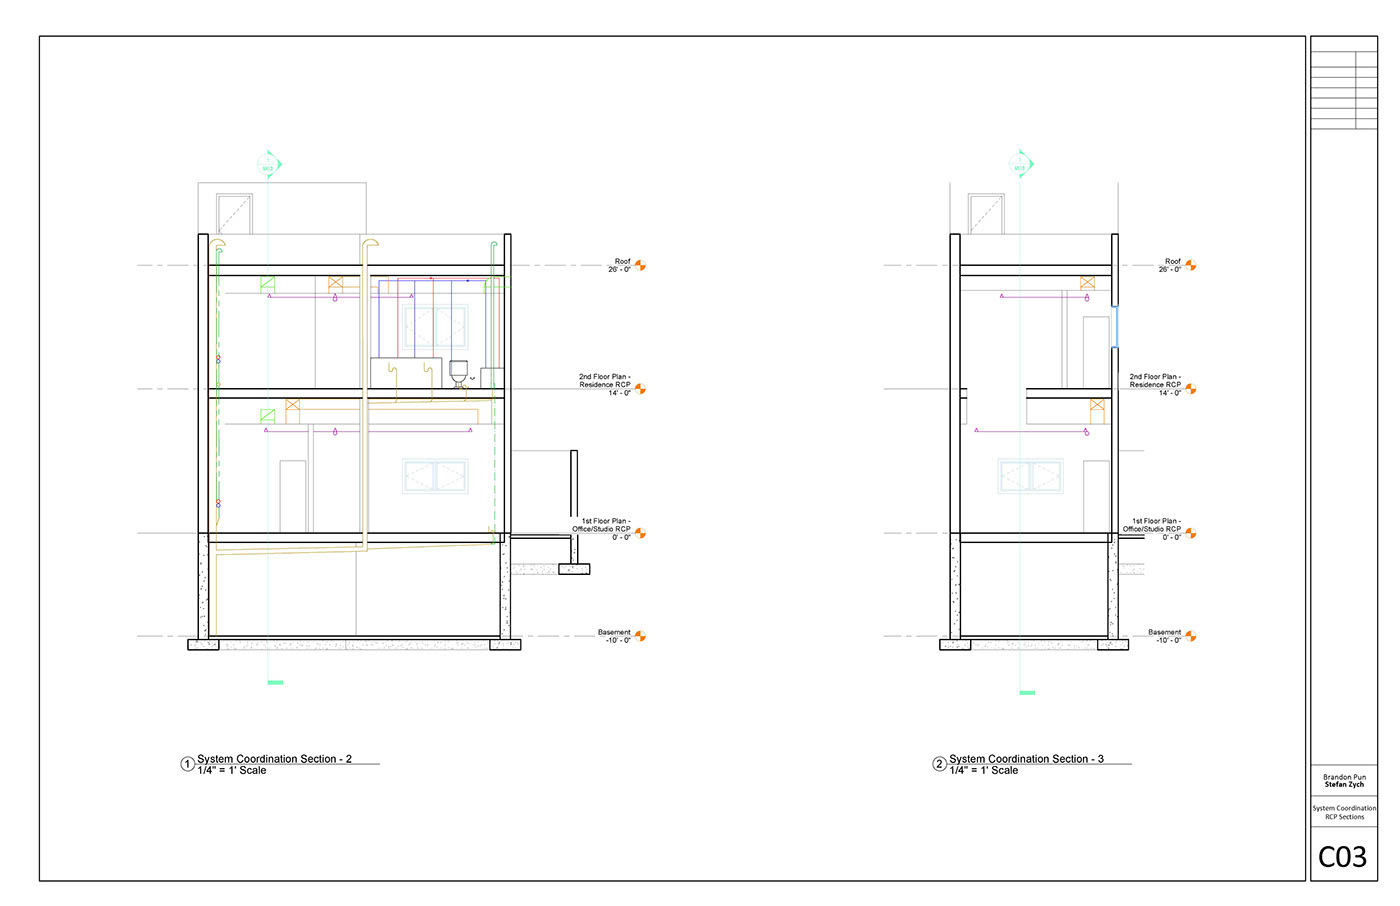 Mechanical Systems Case Study On Behance Hvac Drawing The Internal Of Structures Including But Not Limited To Plumbing Lighting And Ventilation Attached Is A Series Drawings